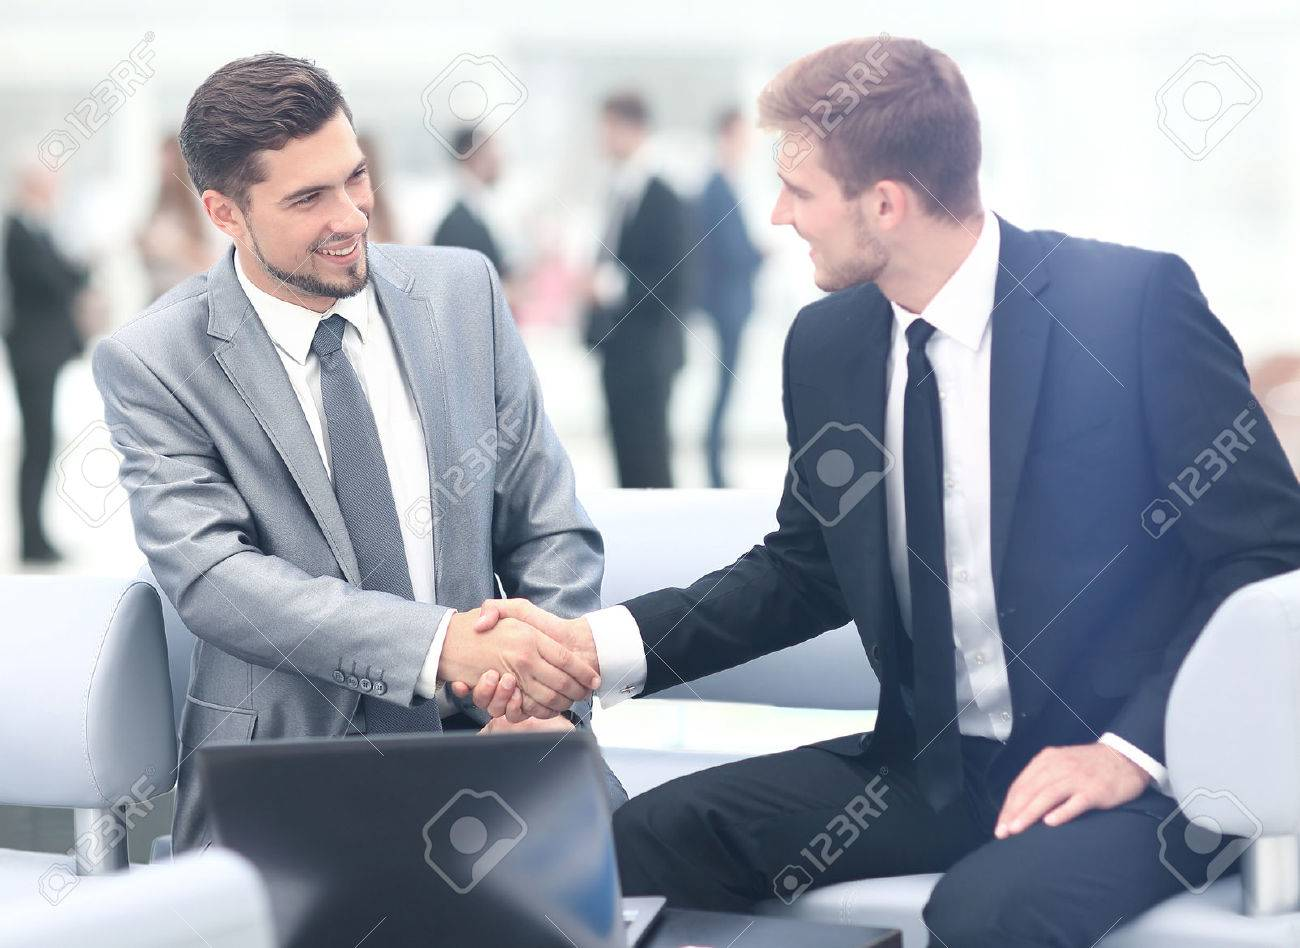 Business people shaking hands during a meeting Standard-Bild - 67471854